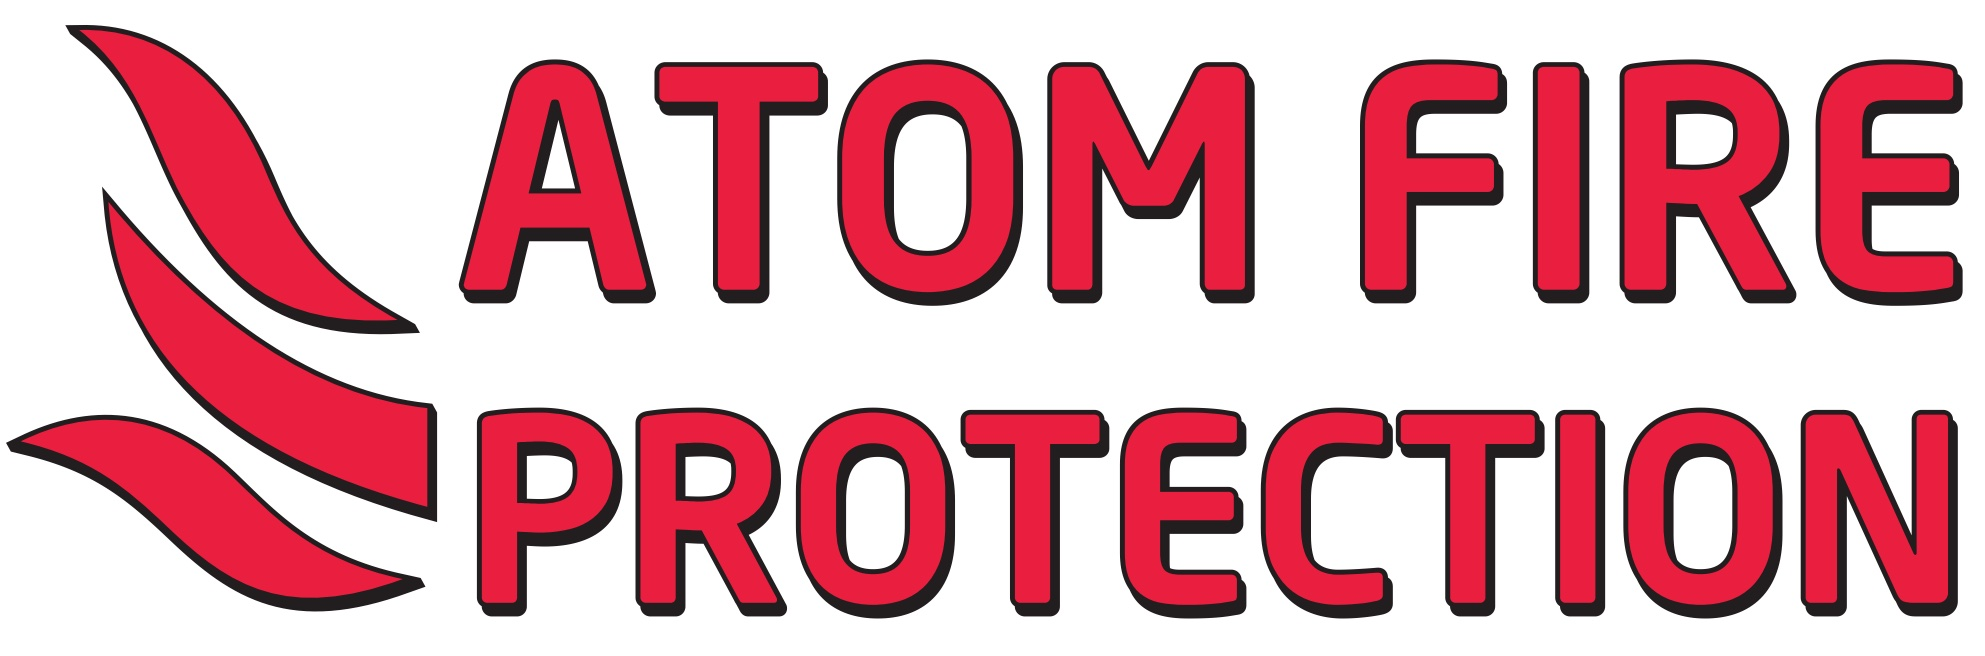 Atom Fire Protection